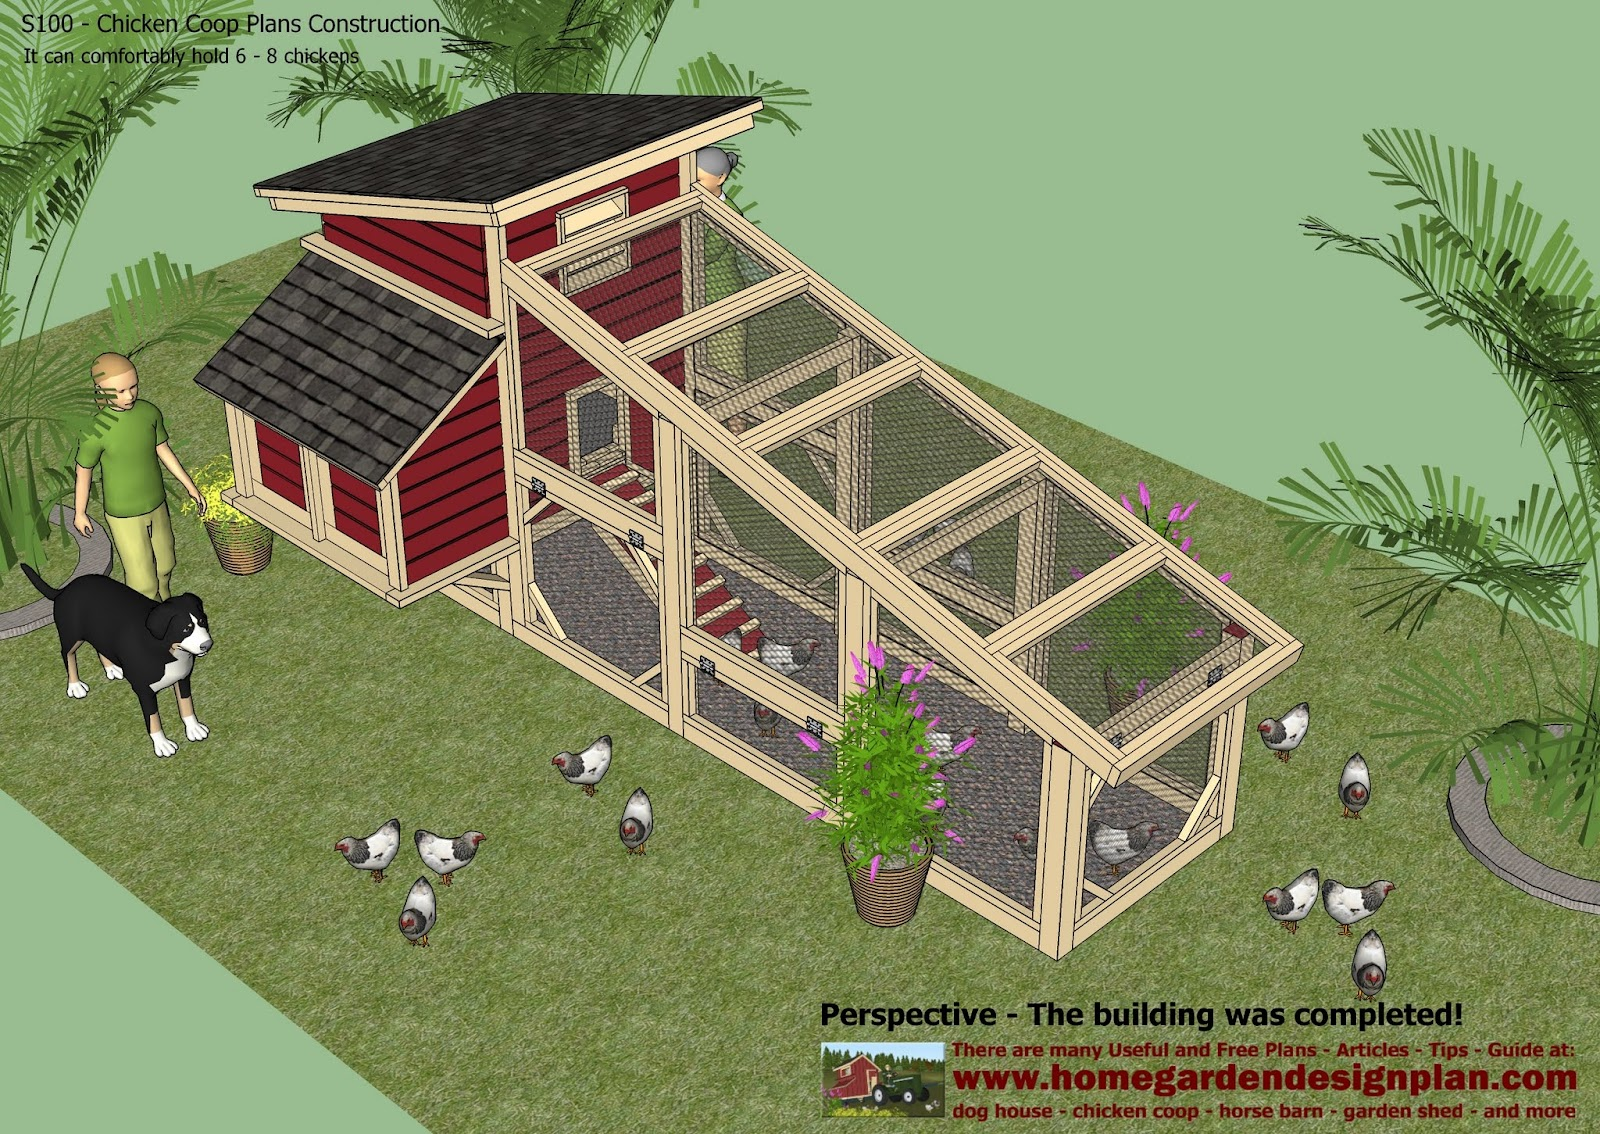 Home garden plans s100 chicken coop plans construction for Chicken coop size for 6 chickens